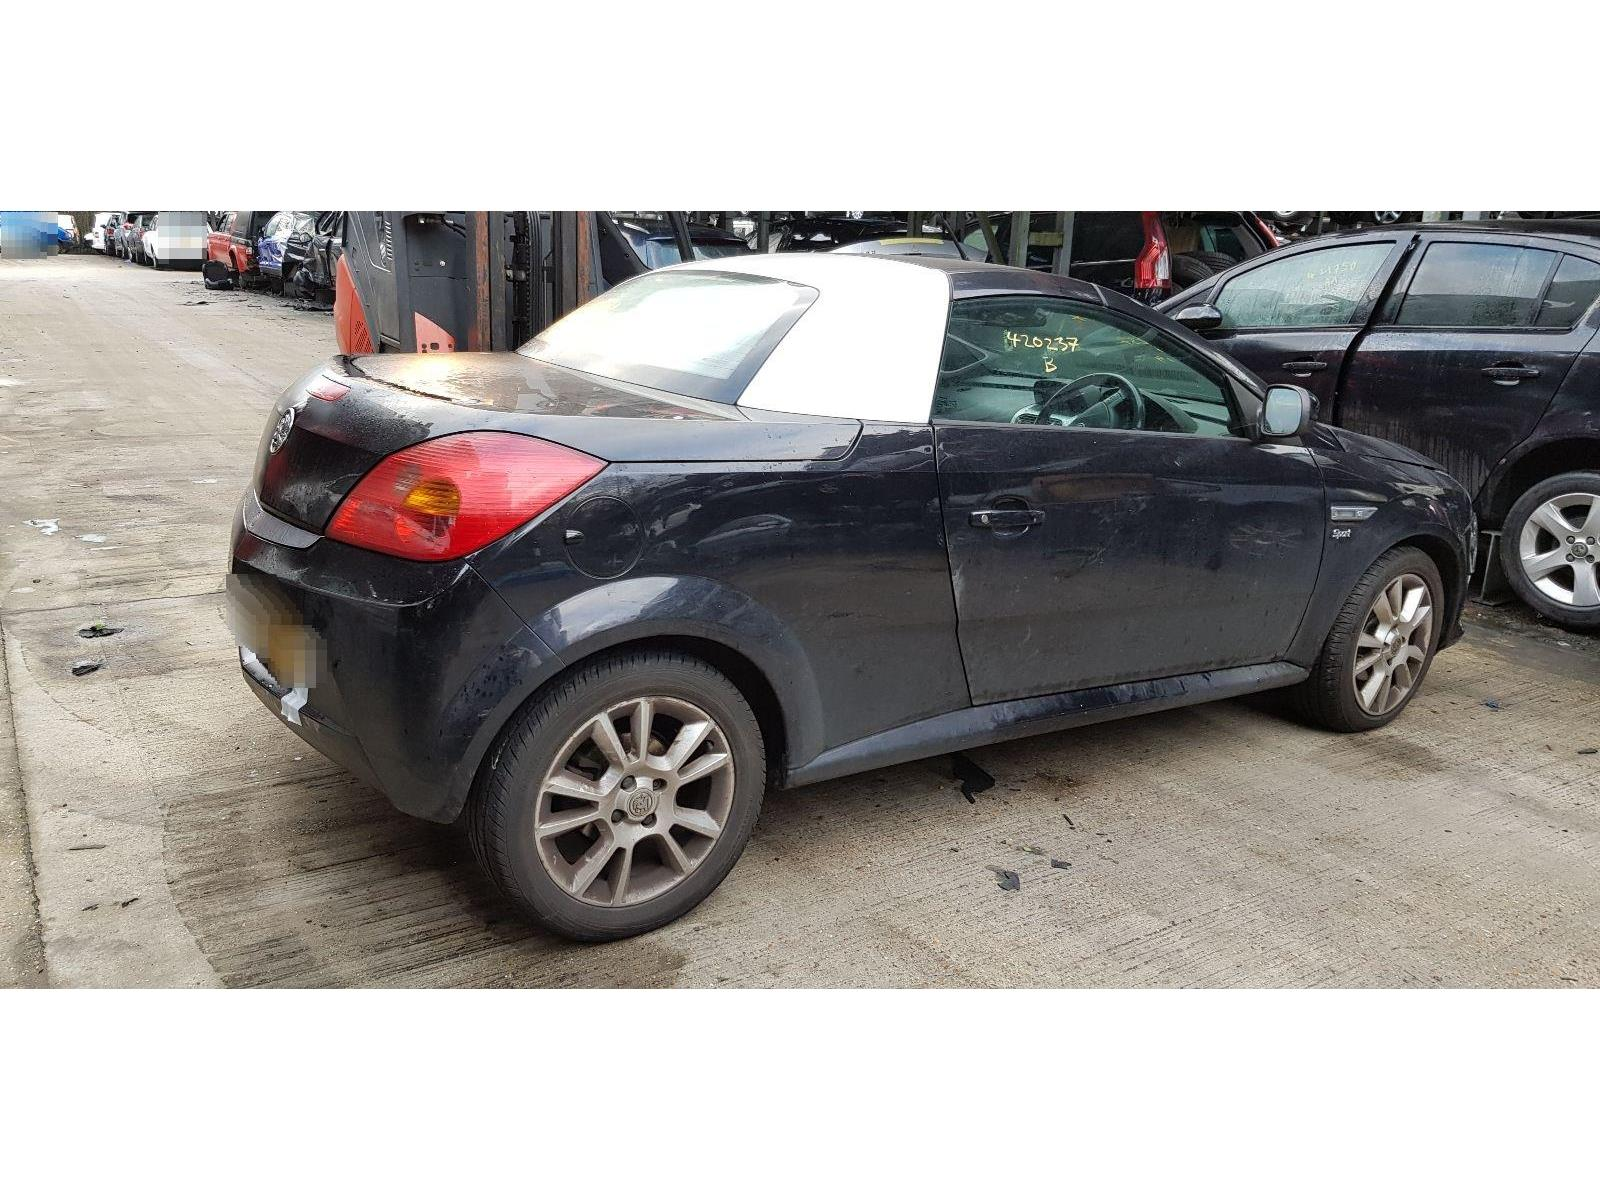 vauxhall tigra 2005 to 2009 sport 2 door cabriolet / scrap / salvage car  for sale / auction | silverlake autoparts